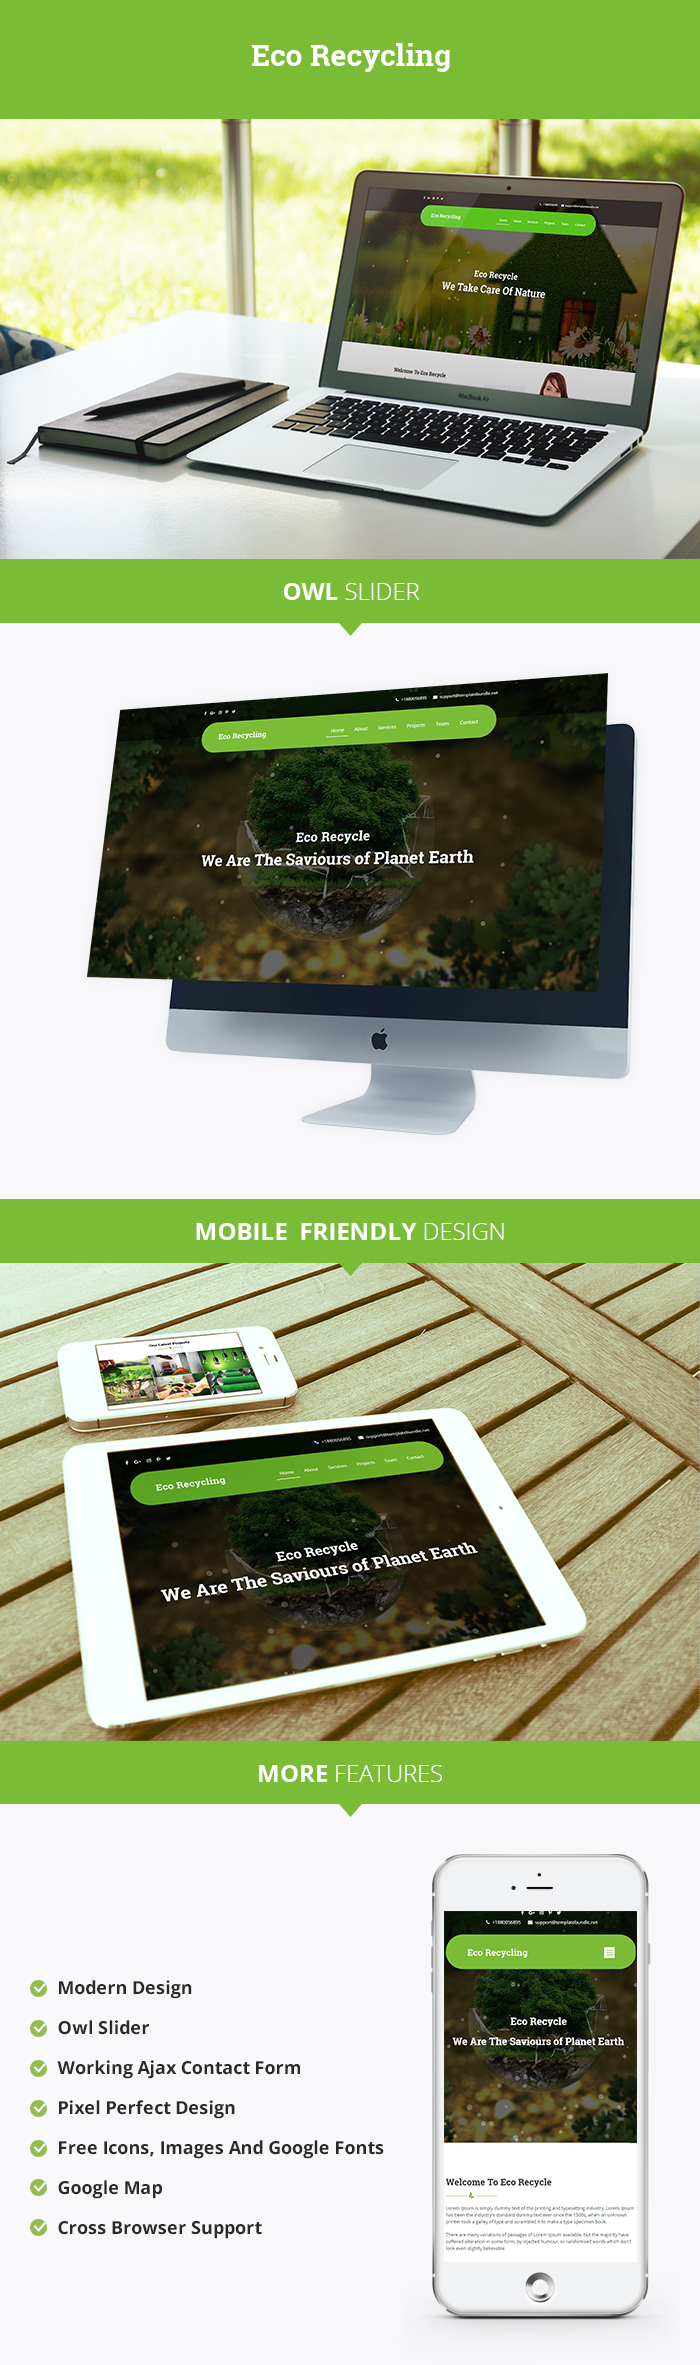 Eco Recycling HTML Website Templates